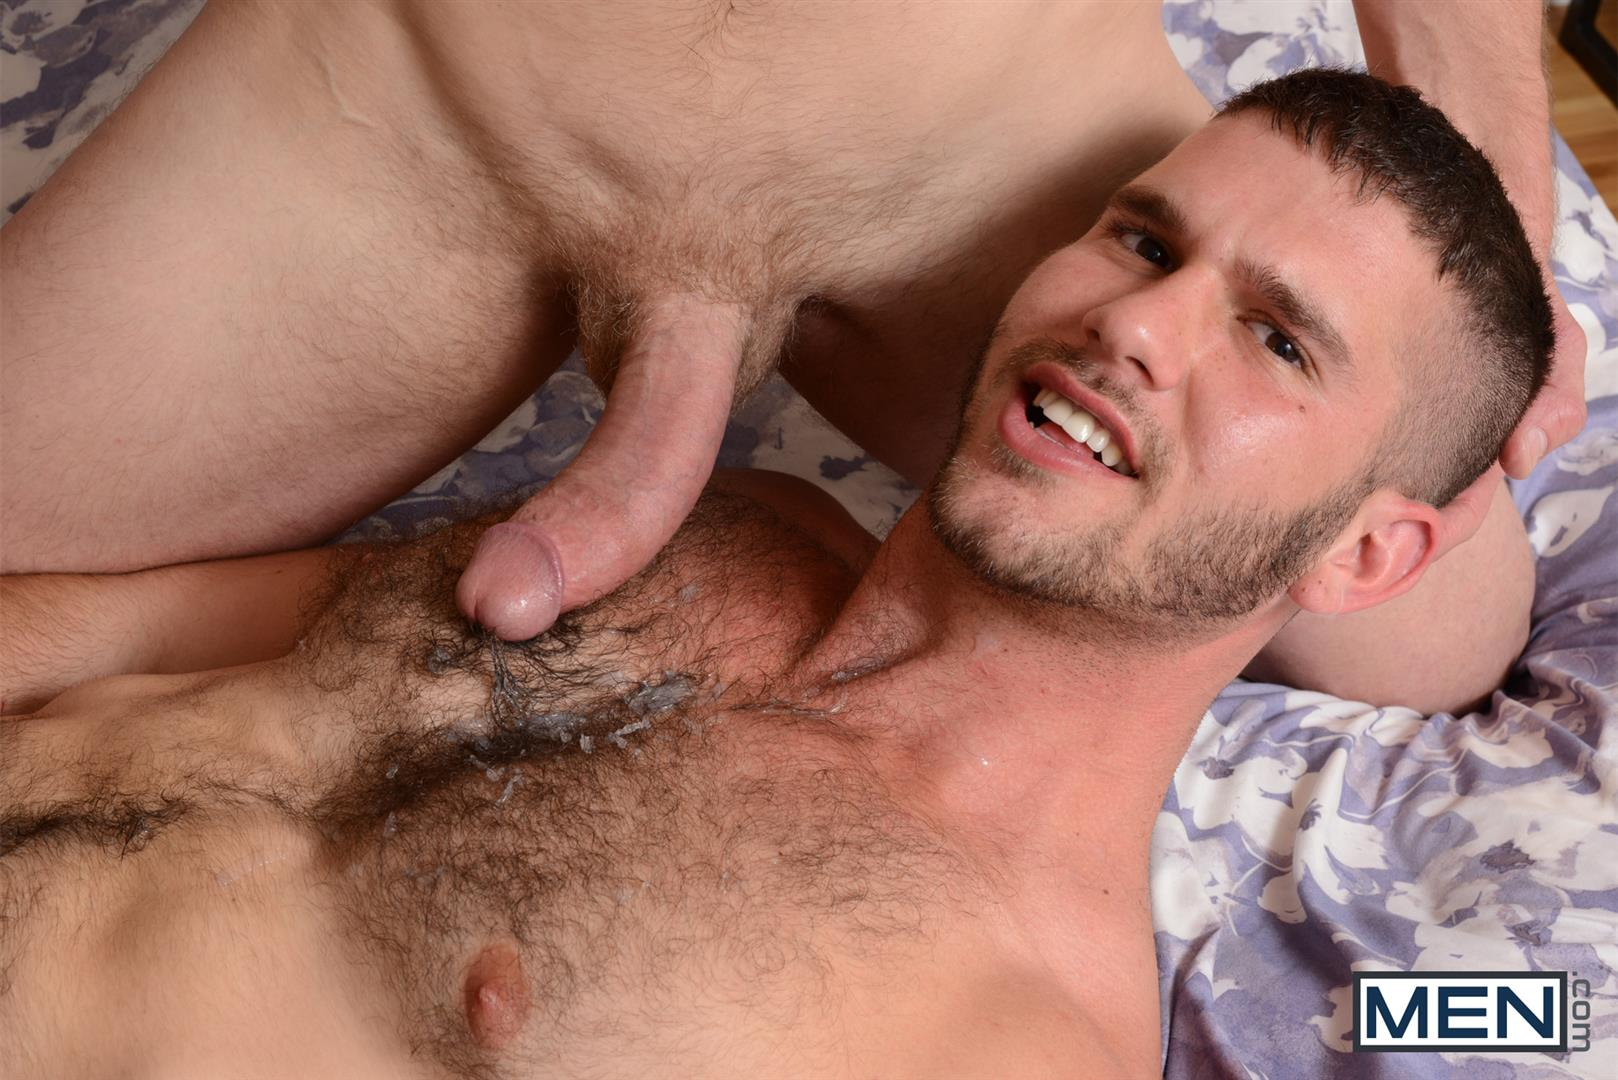 Sex gay hot hairy old like so many straight